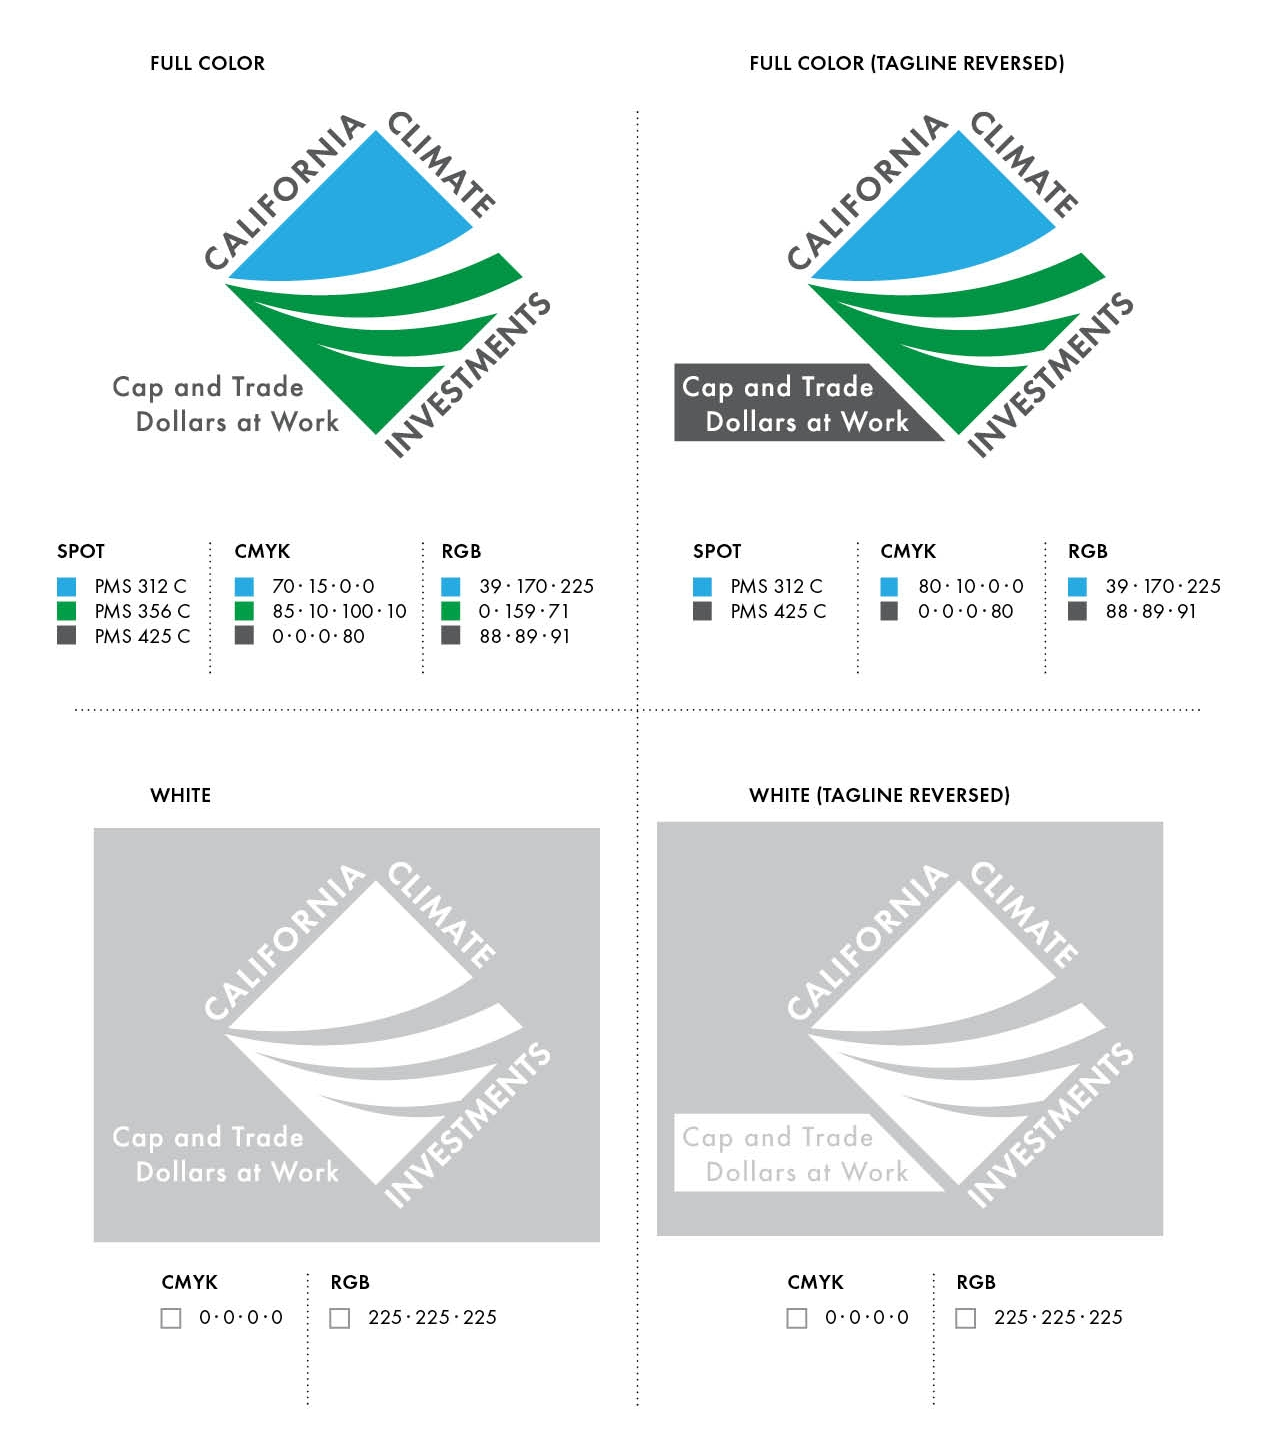 four panel depiction of available logo versions featuring different designs and color schemes..